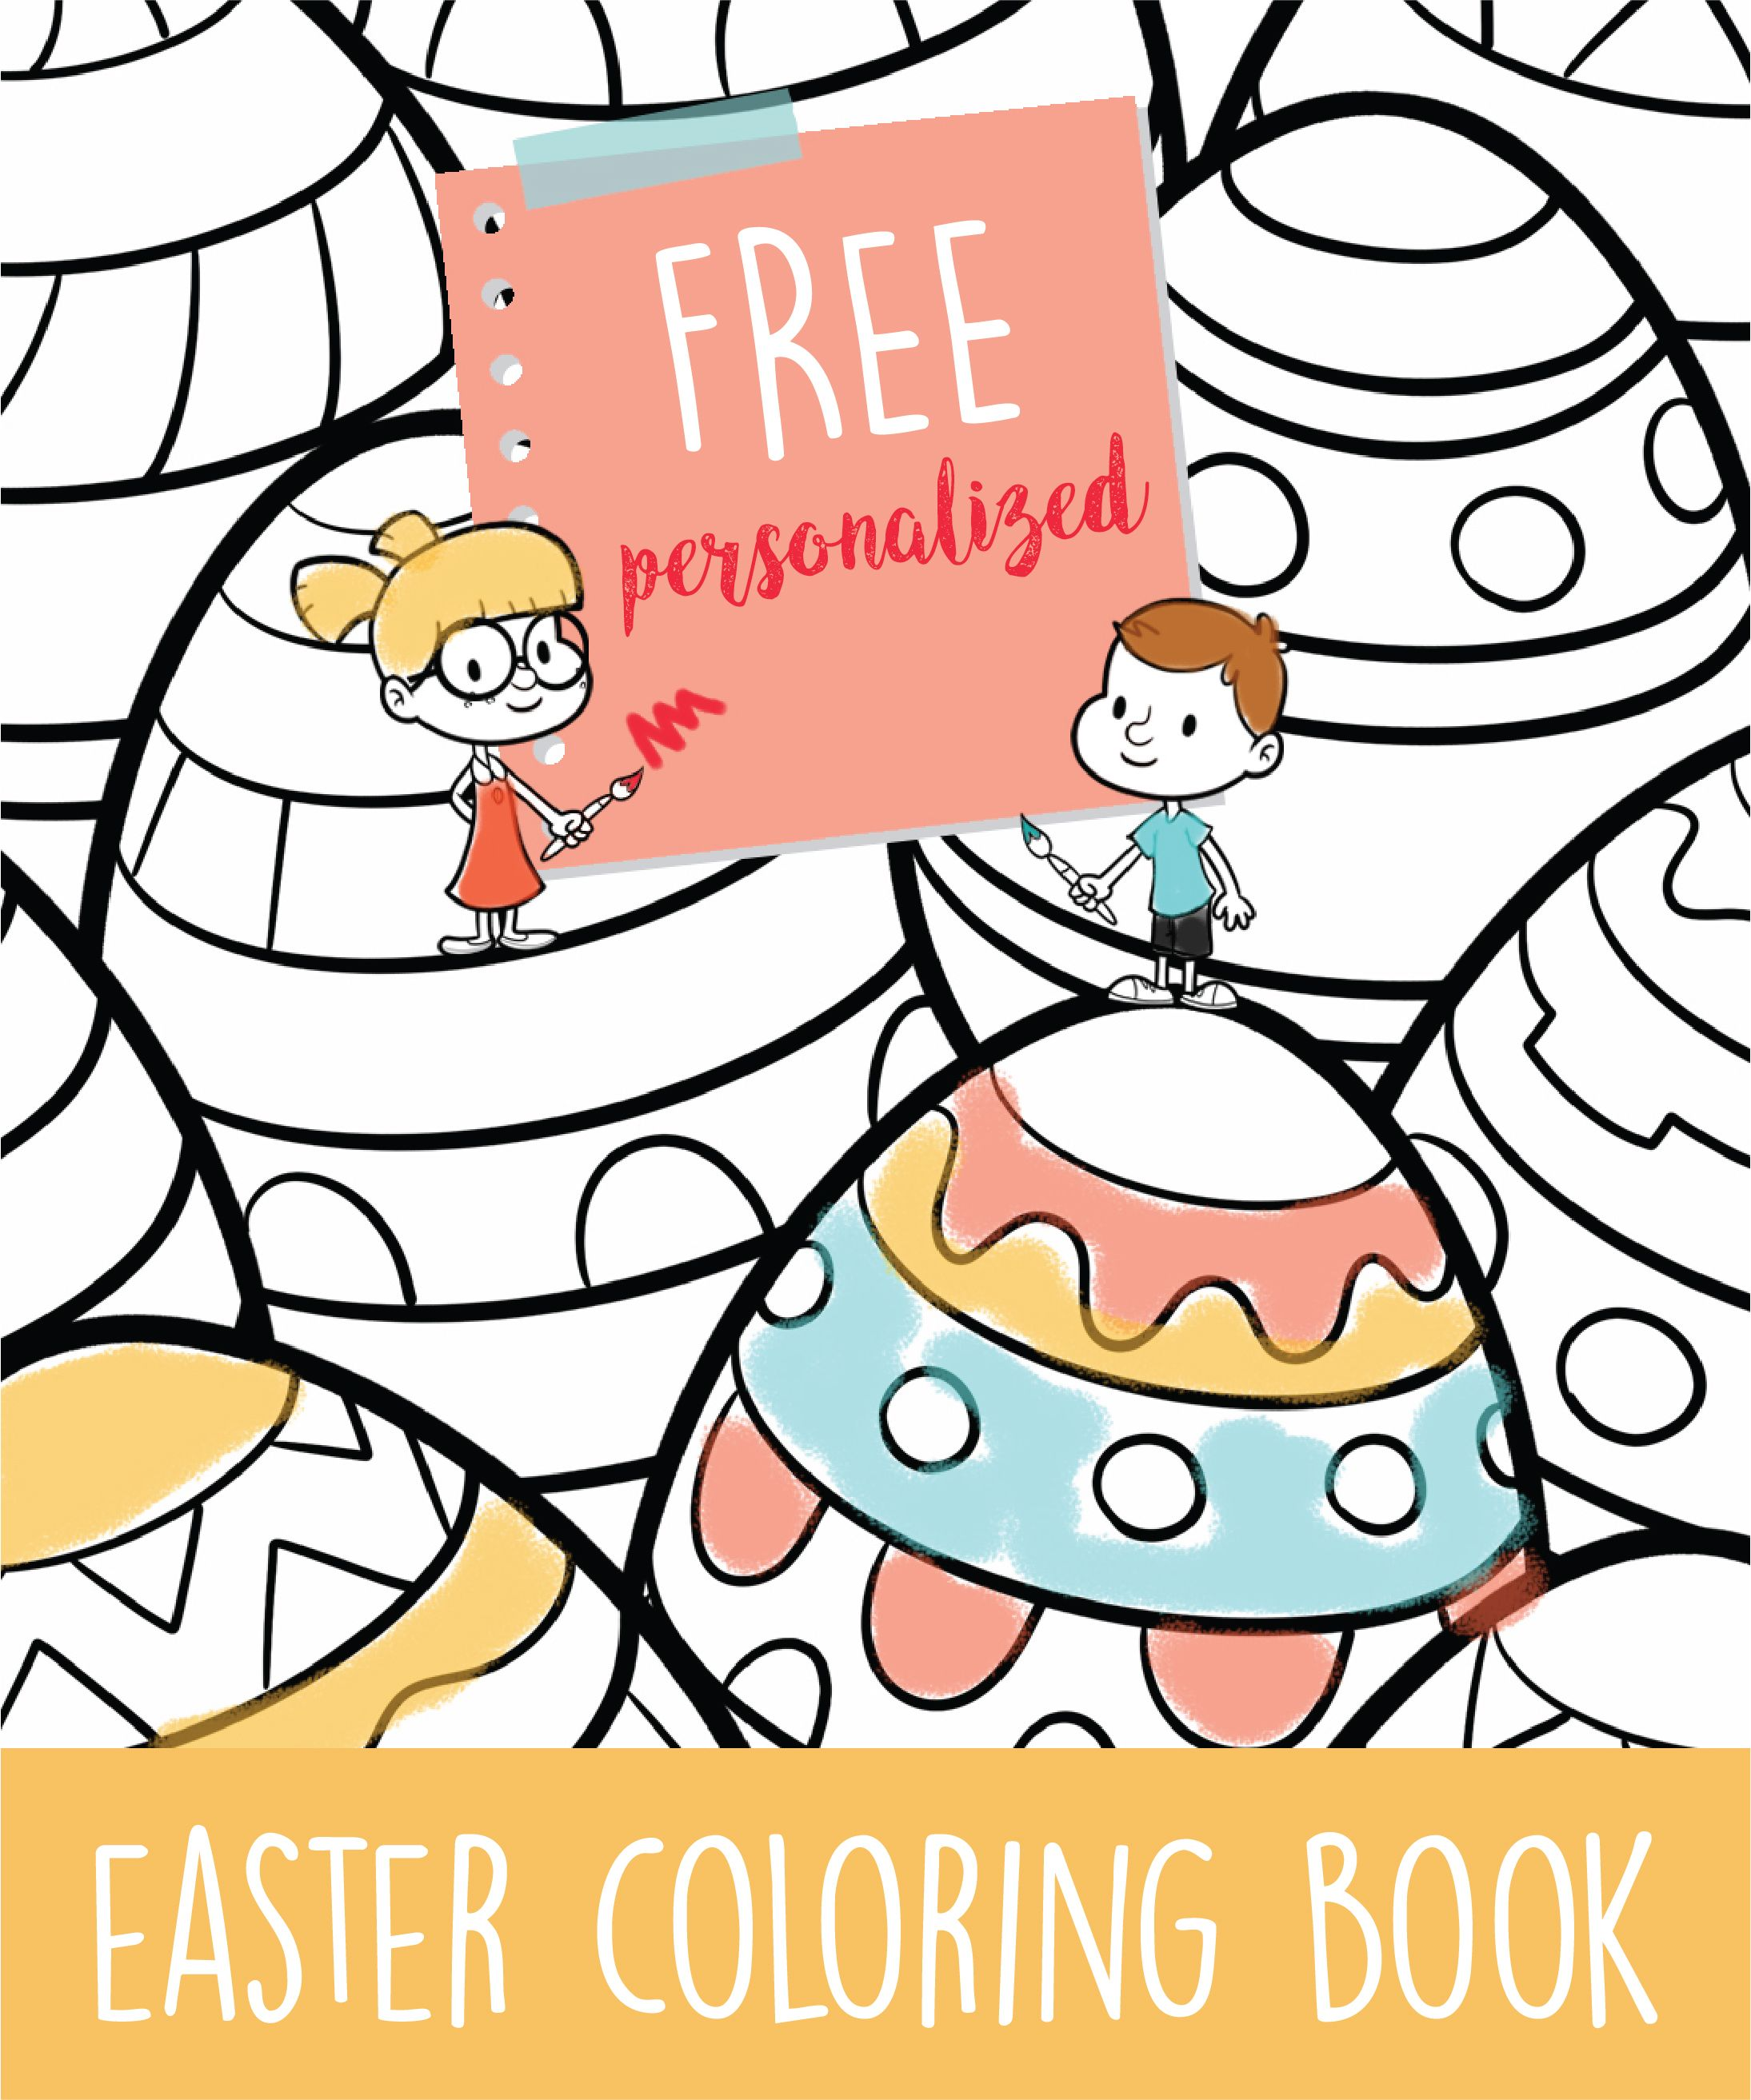 Download Our Super Cute Personalized Coloring Books For Free This Printable Coloring Book Is Pe Easter Coloring Book Personalized Coloring Book Coloring Books